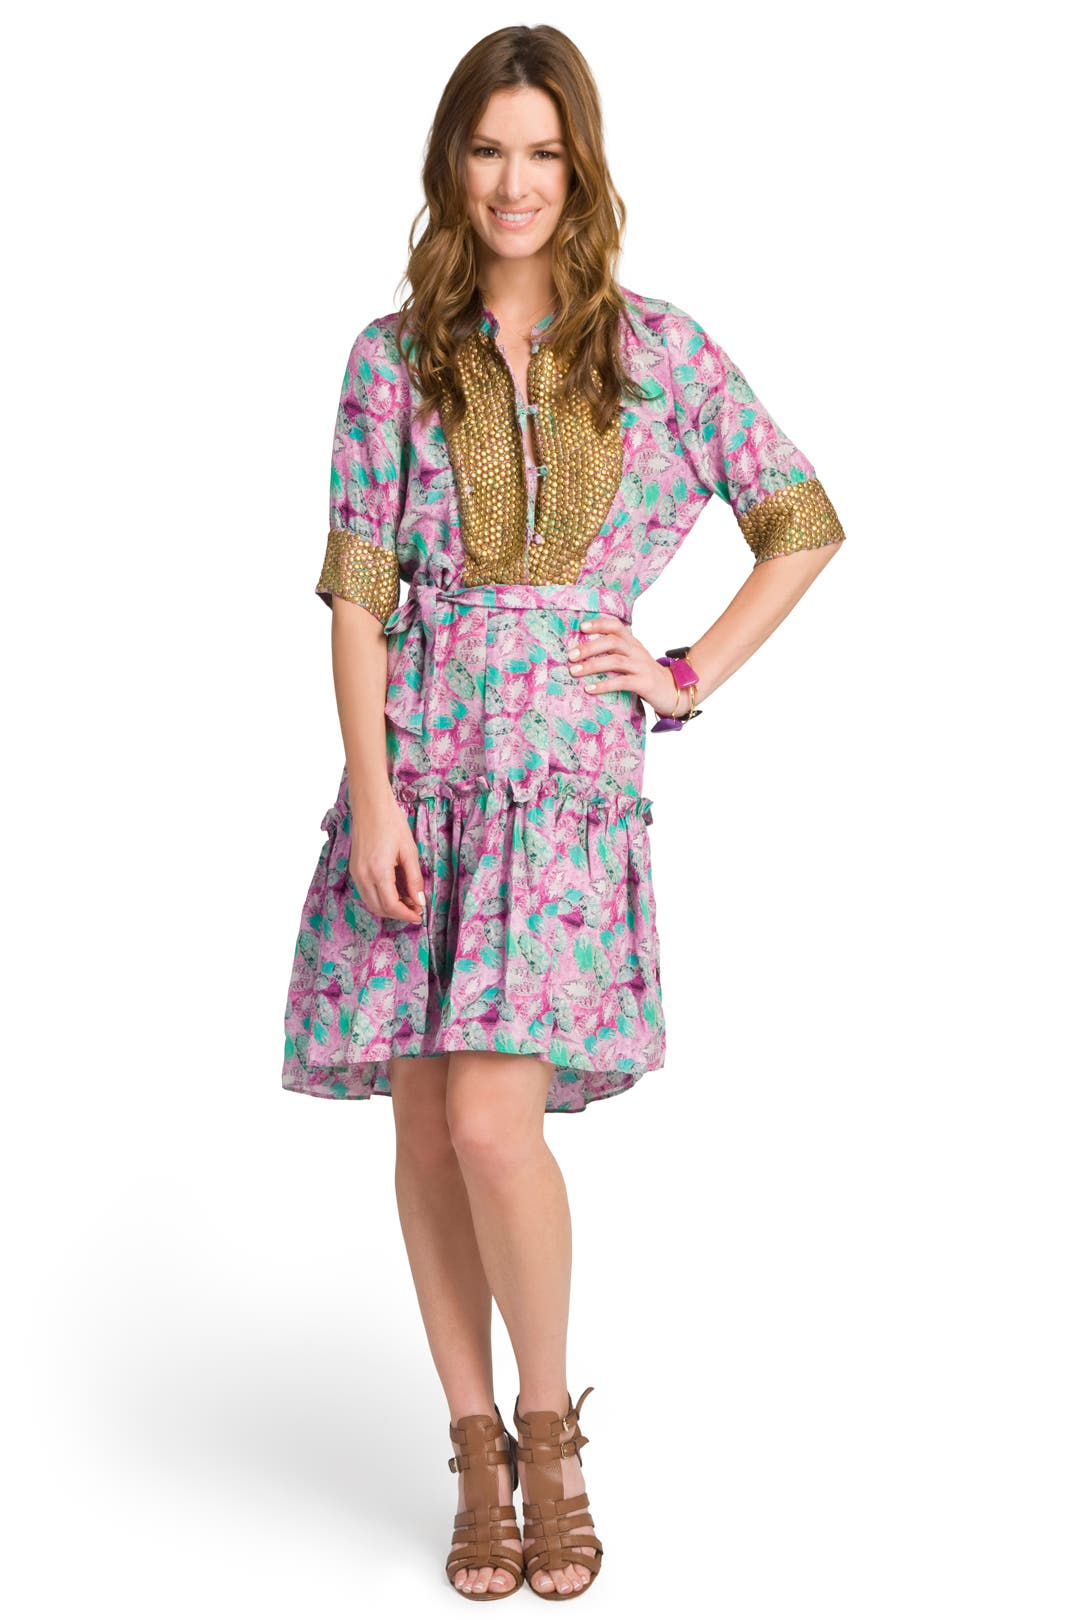 Boho Mary Kate Dress by Gryphon